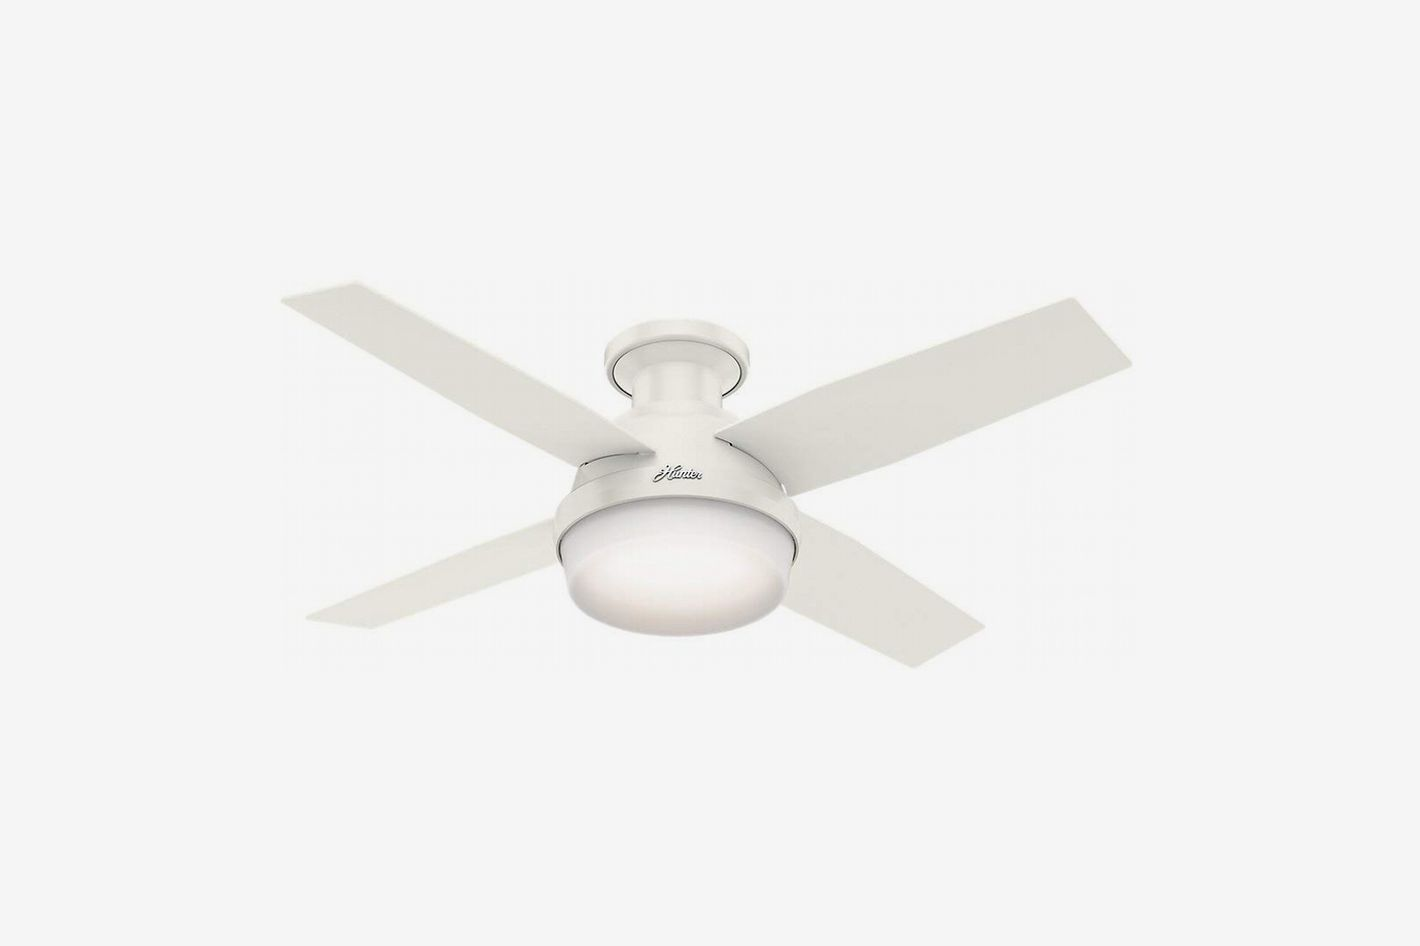 hunter fans 59244 dempsey low profile ceiling fan with light and remote,  white, 42